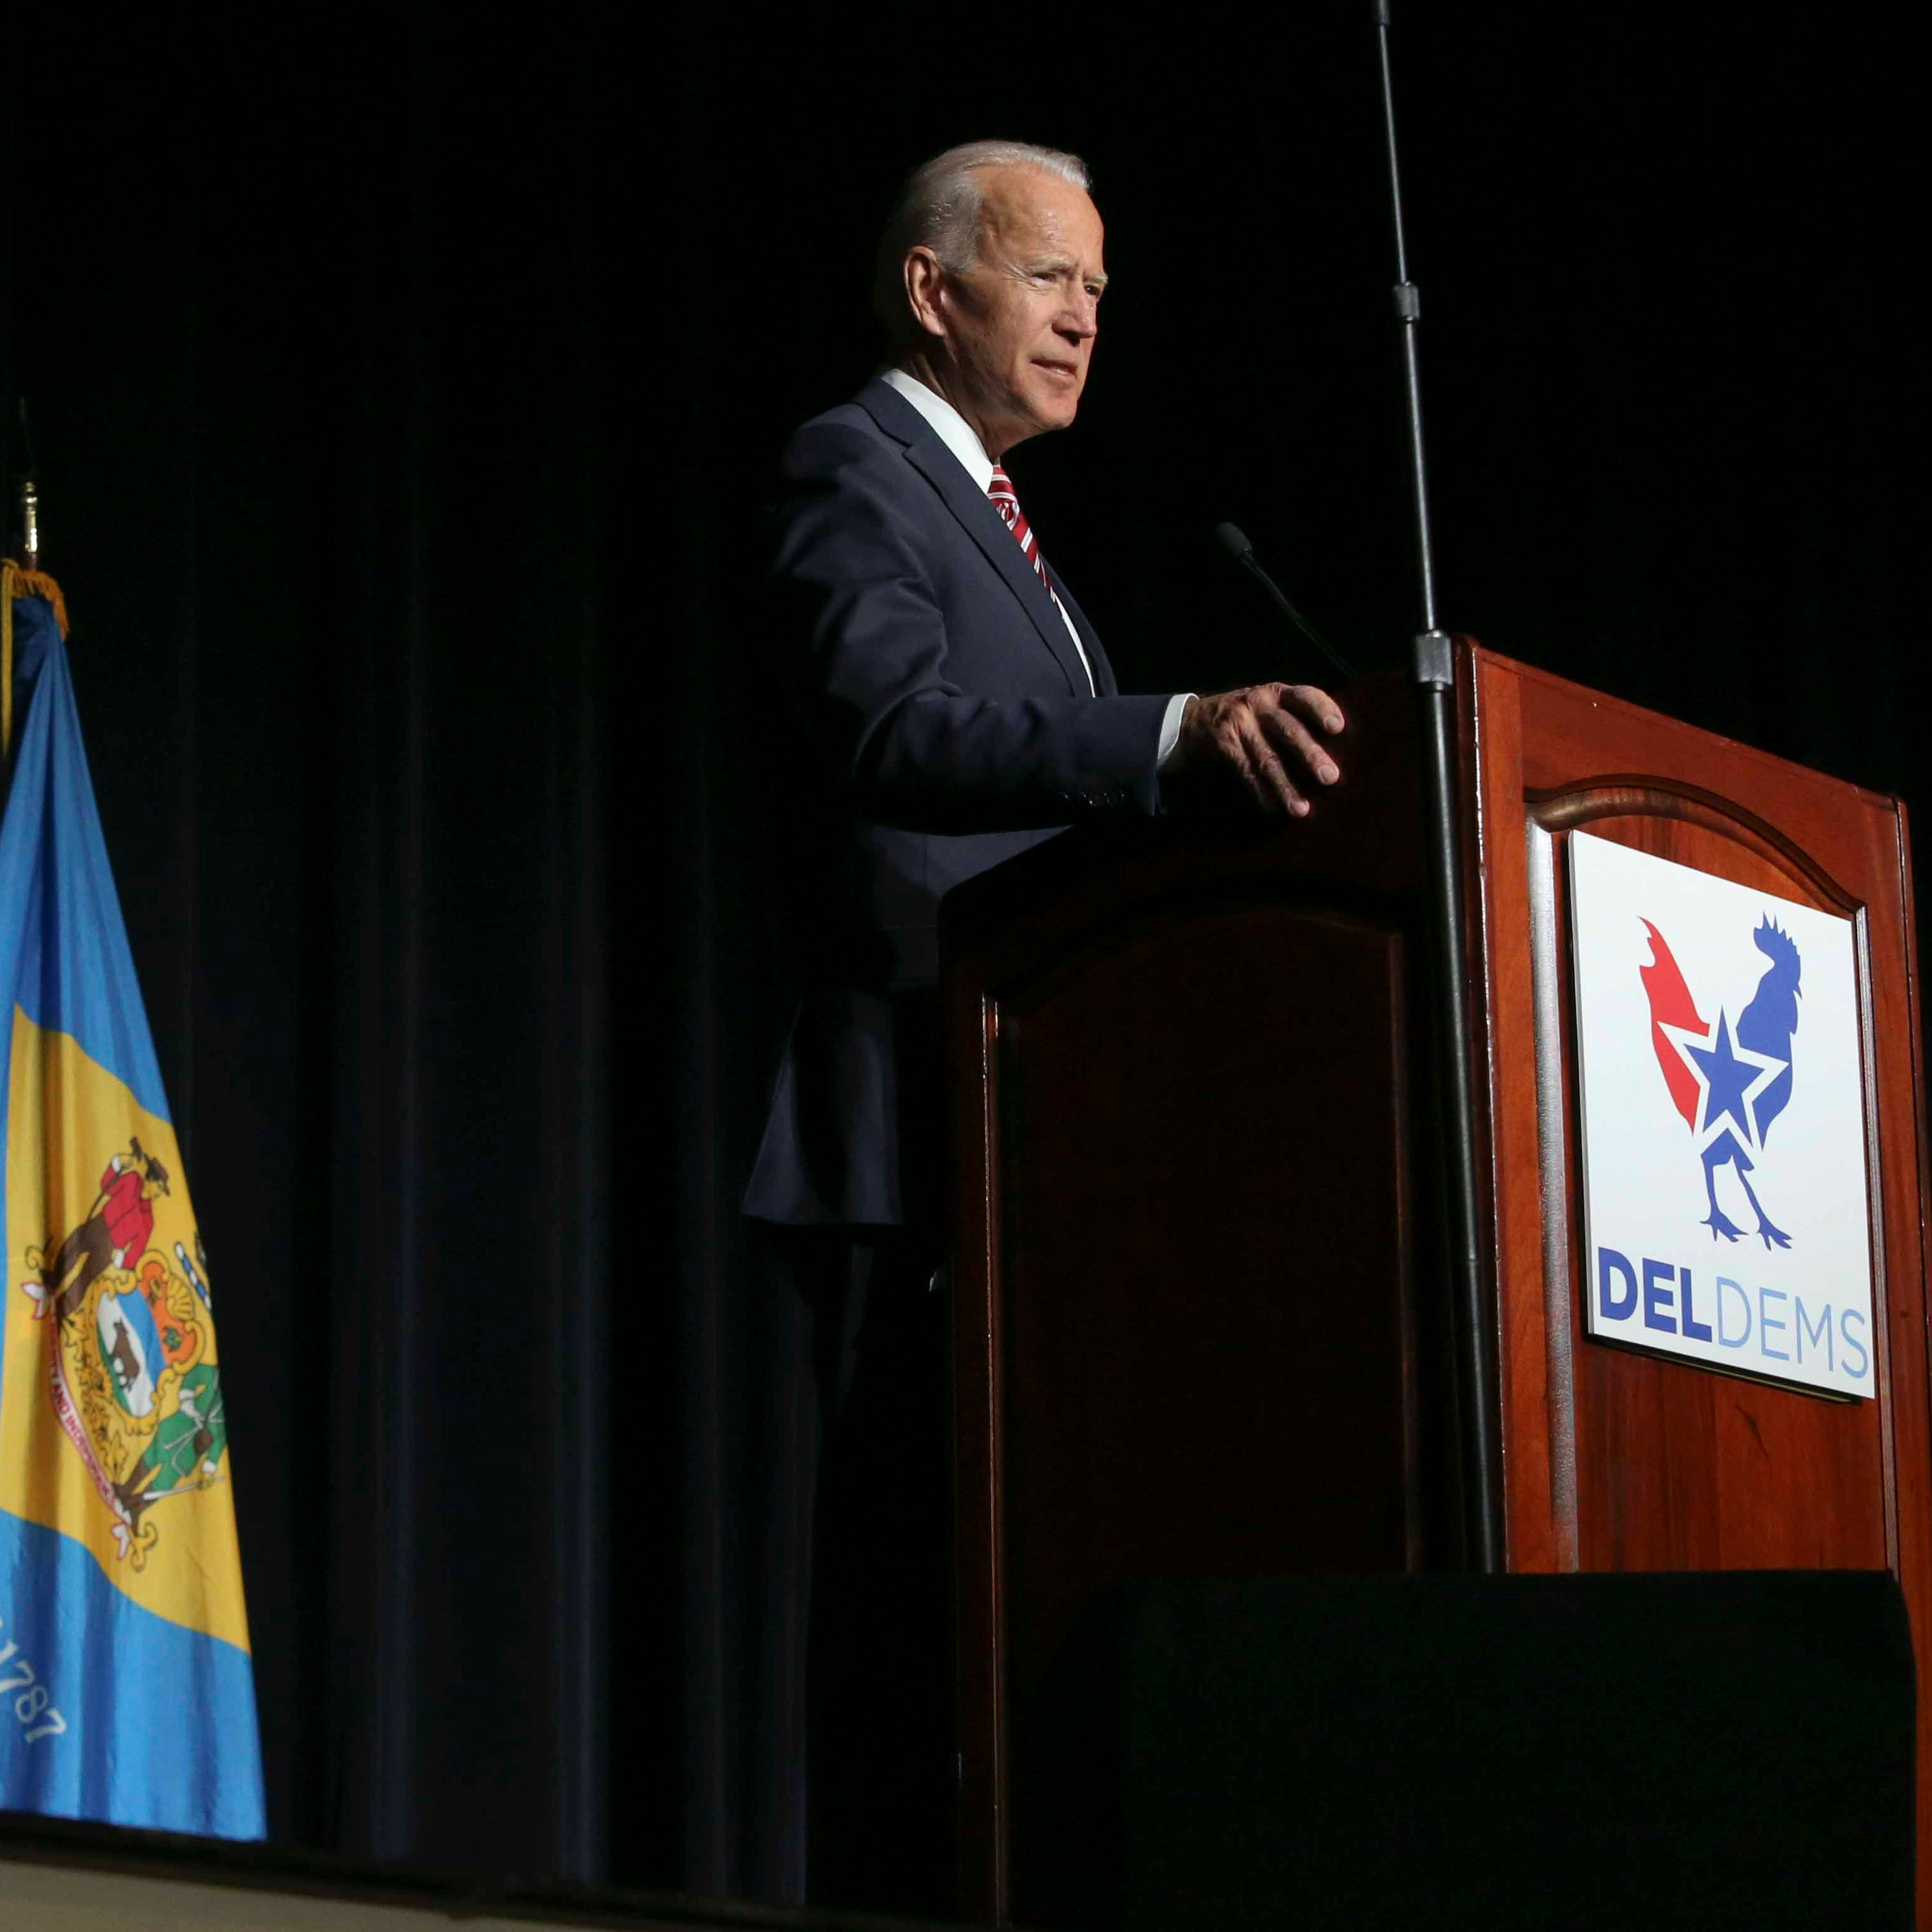 Joe Biden doesn't announce presidential candidacy, but says he has 'most progressive record'